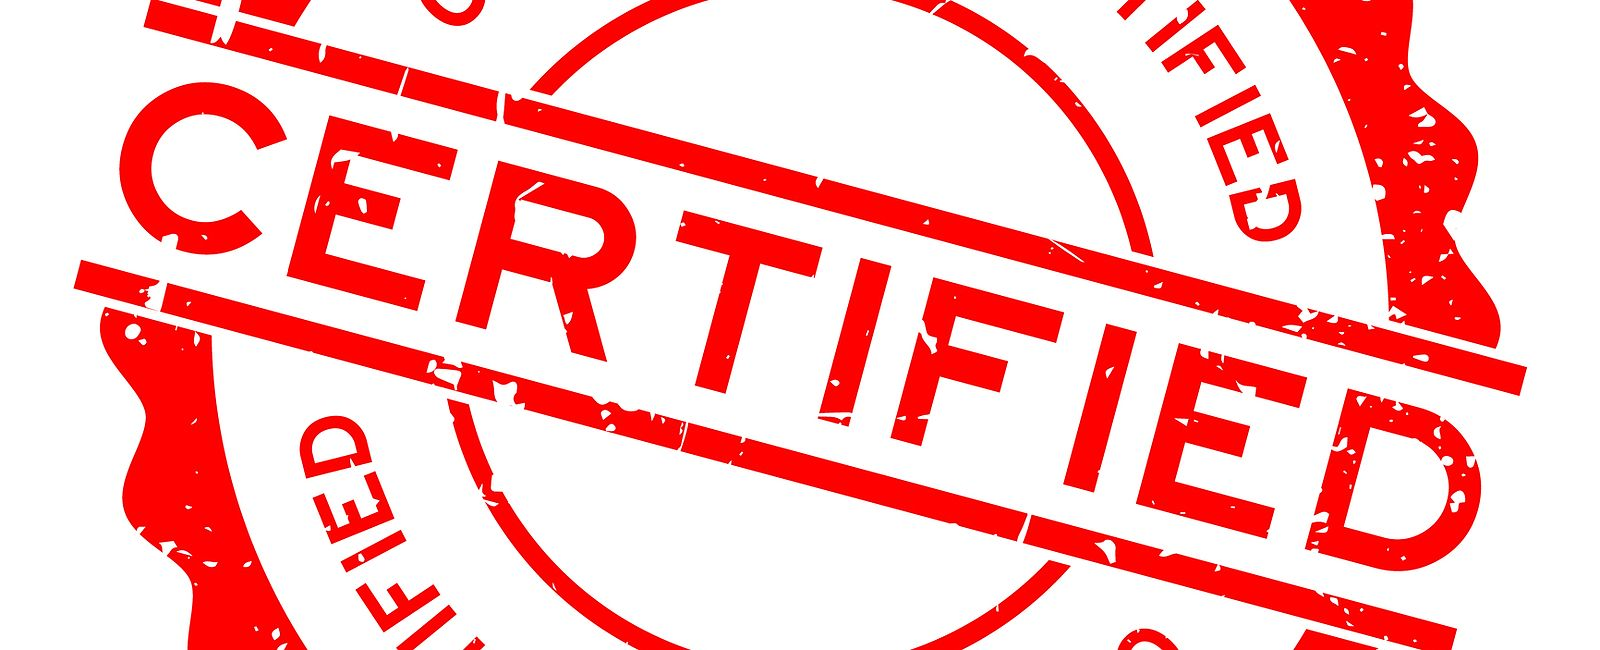 7-benefits-of-being-a-certified-cable-installer